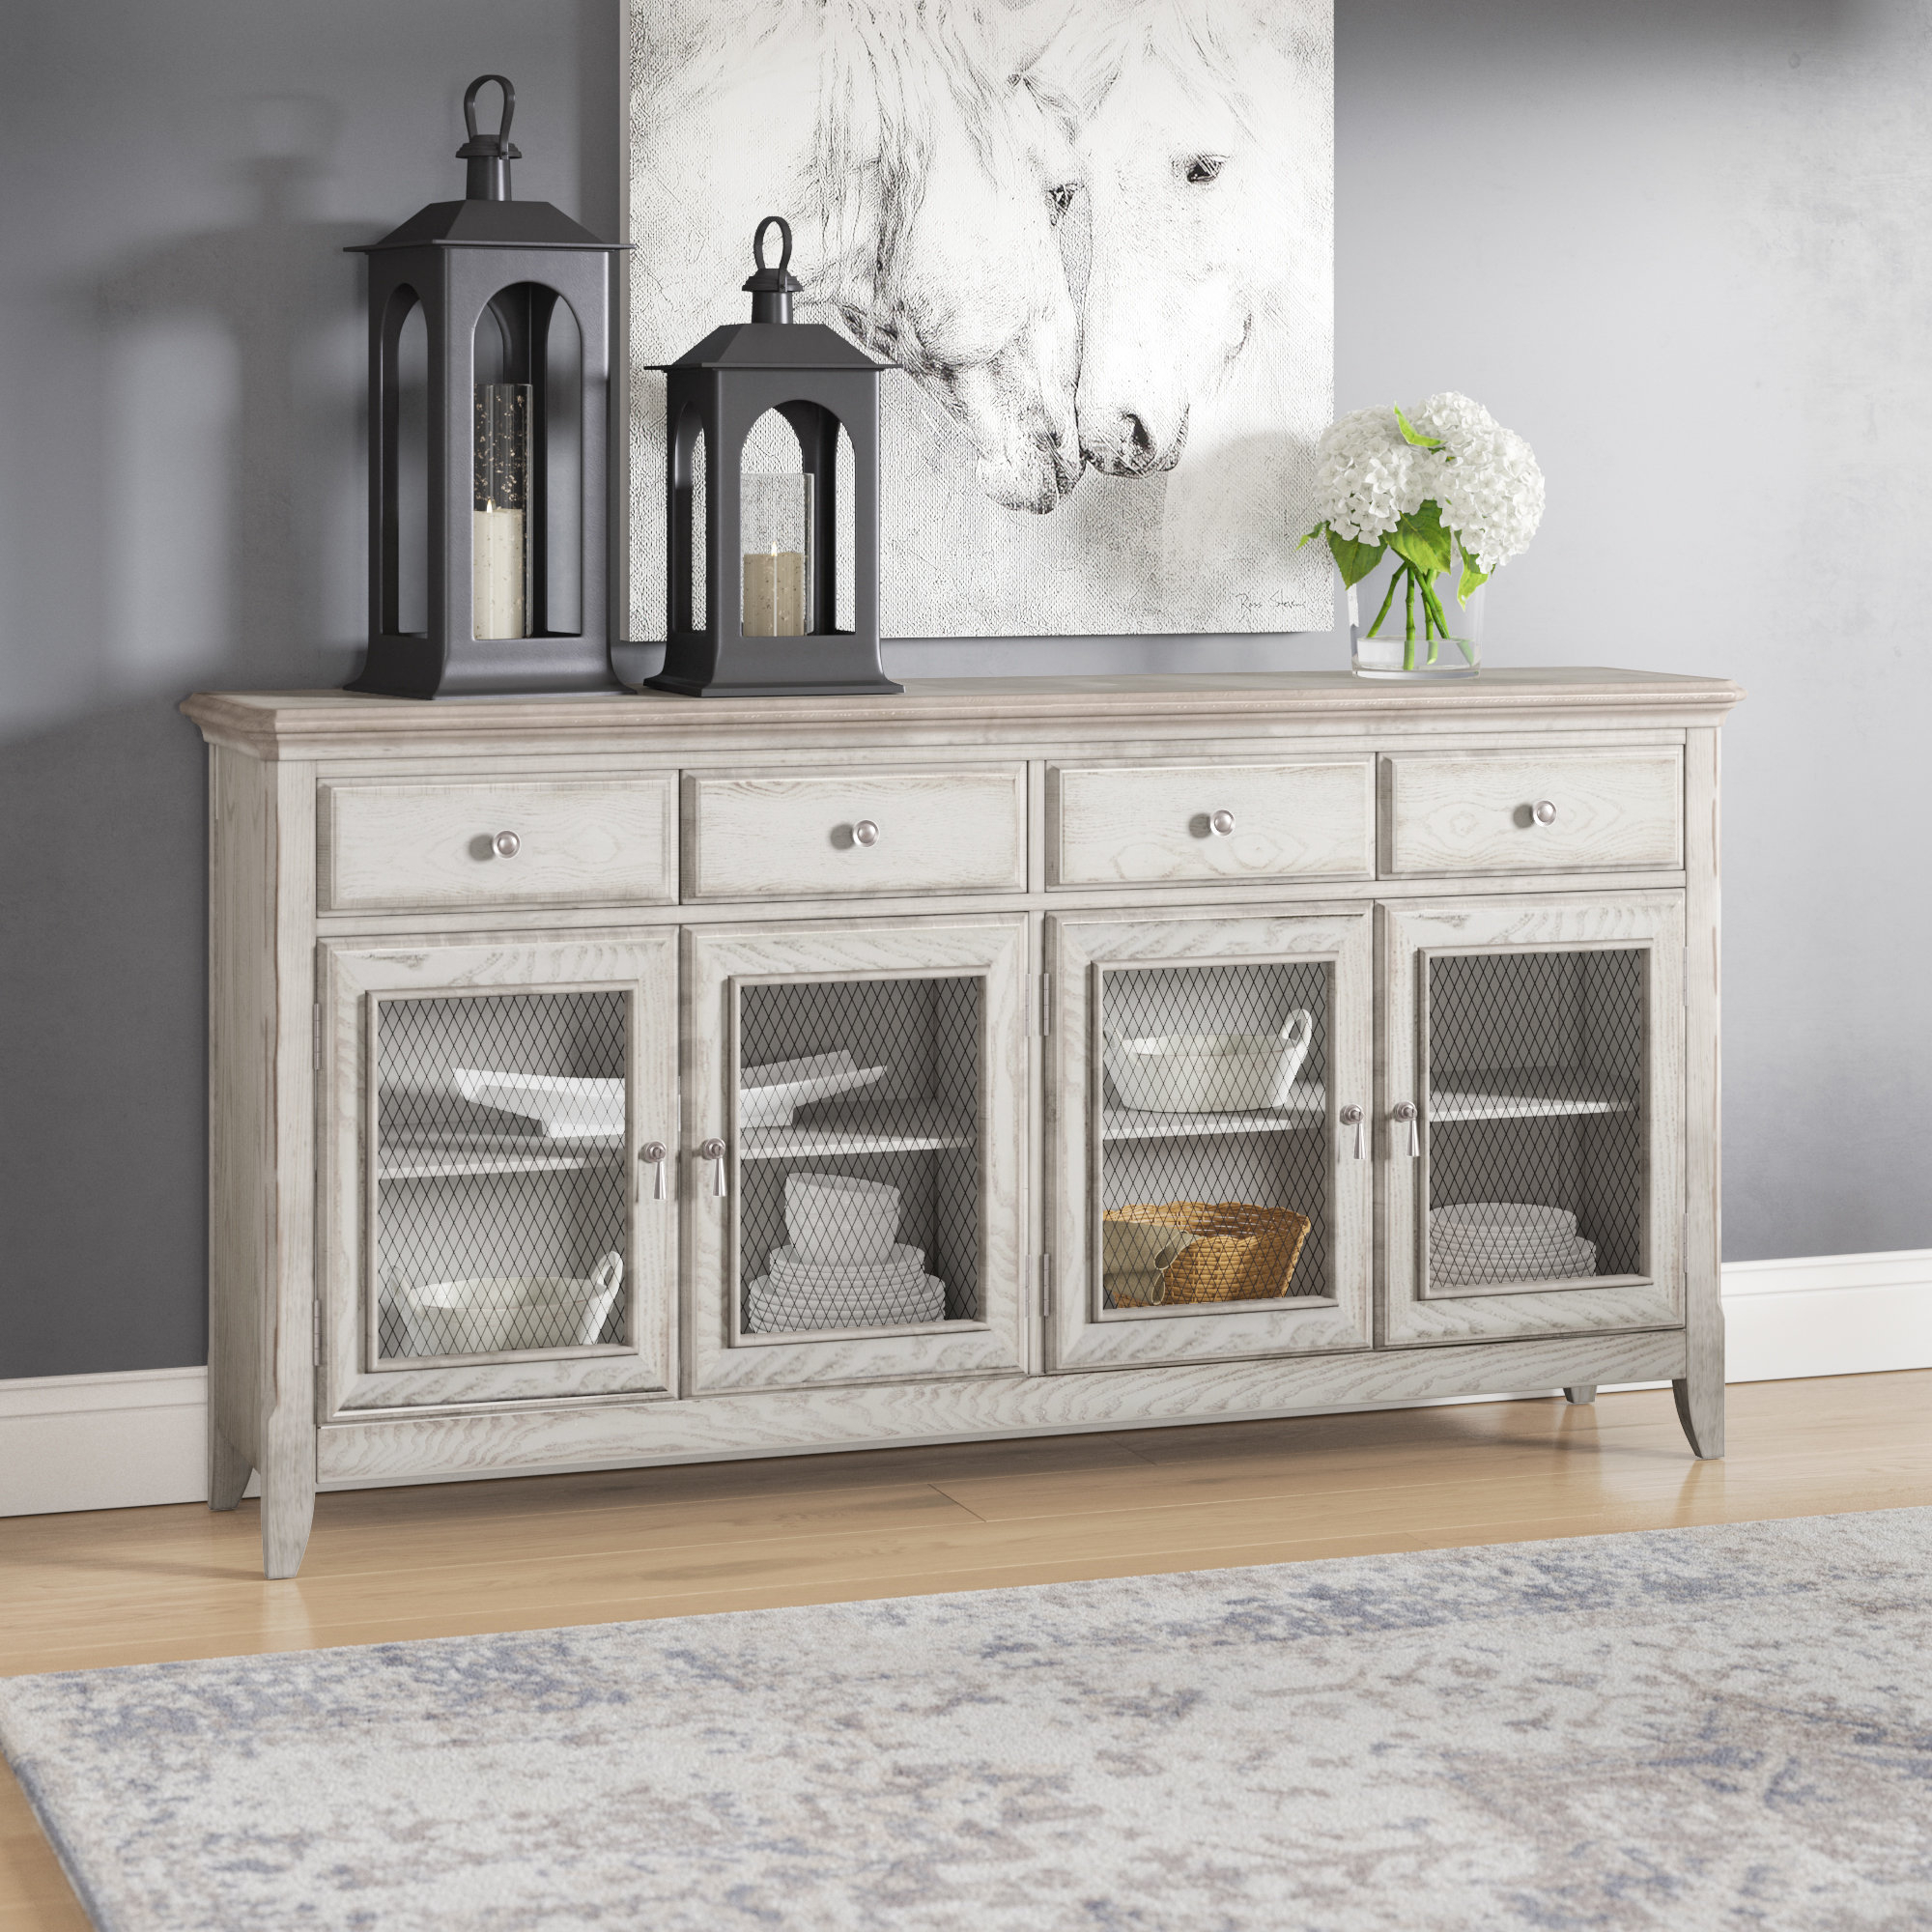 Elyza 4 Door Credenza | Wayfair With Regard To Elyza Credenzas (View 3 of 30)